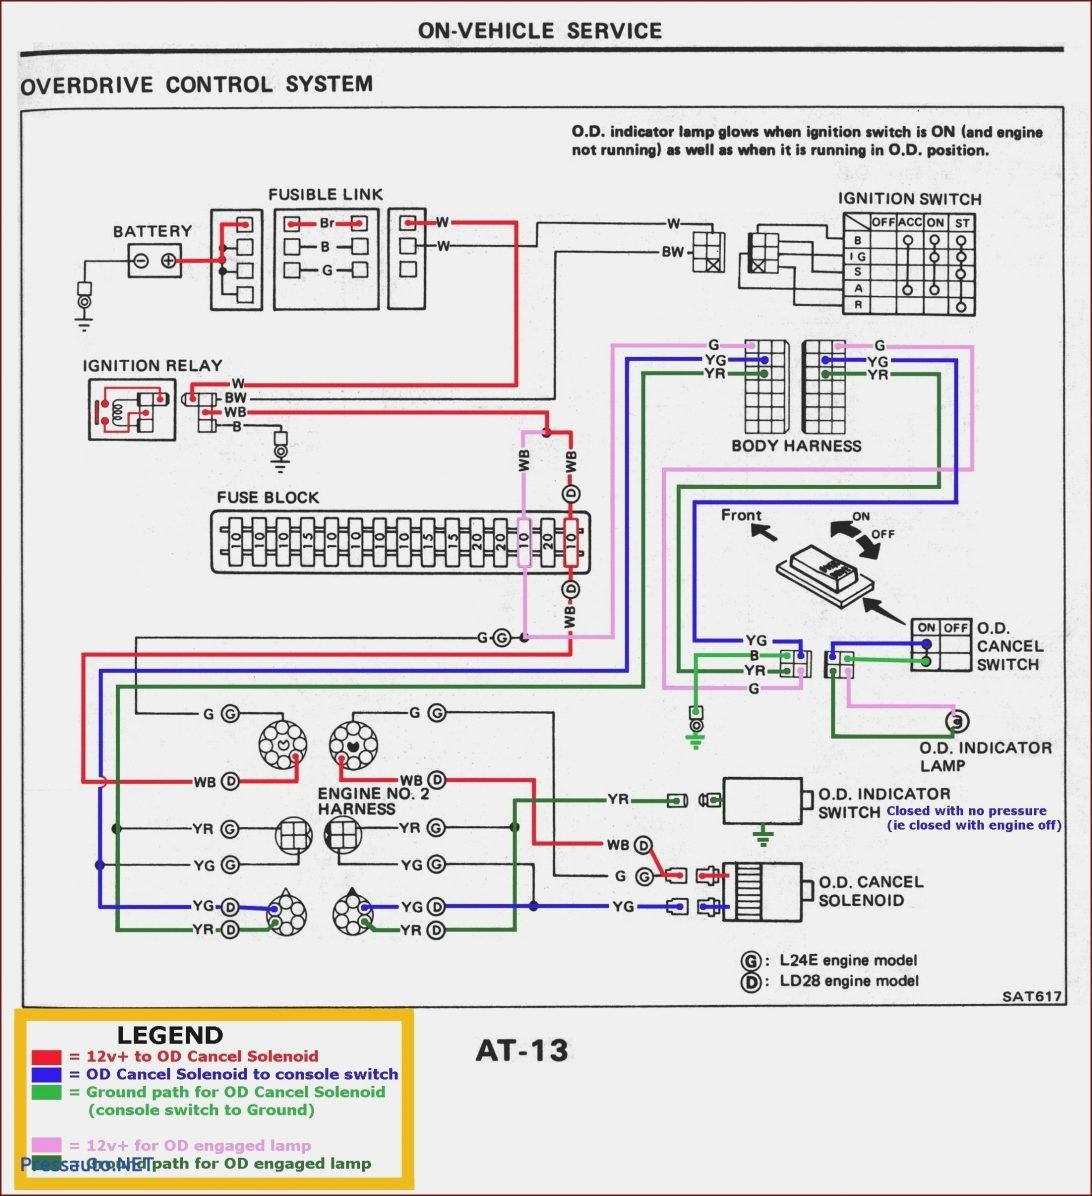 2007 Dodge Ram Wiring Schematic In 2020 Electrical Wiring Diagram Trailer Wiring Diagram Alternator